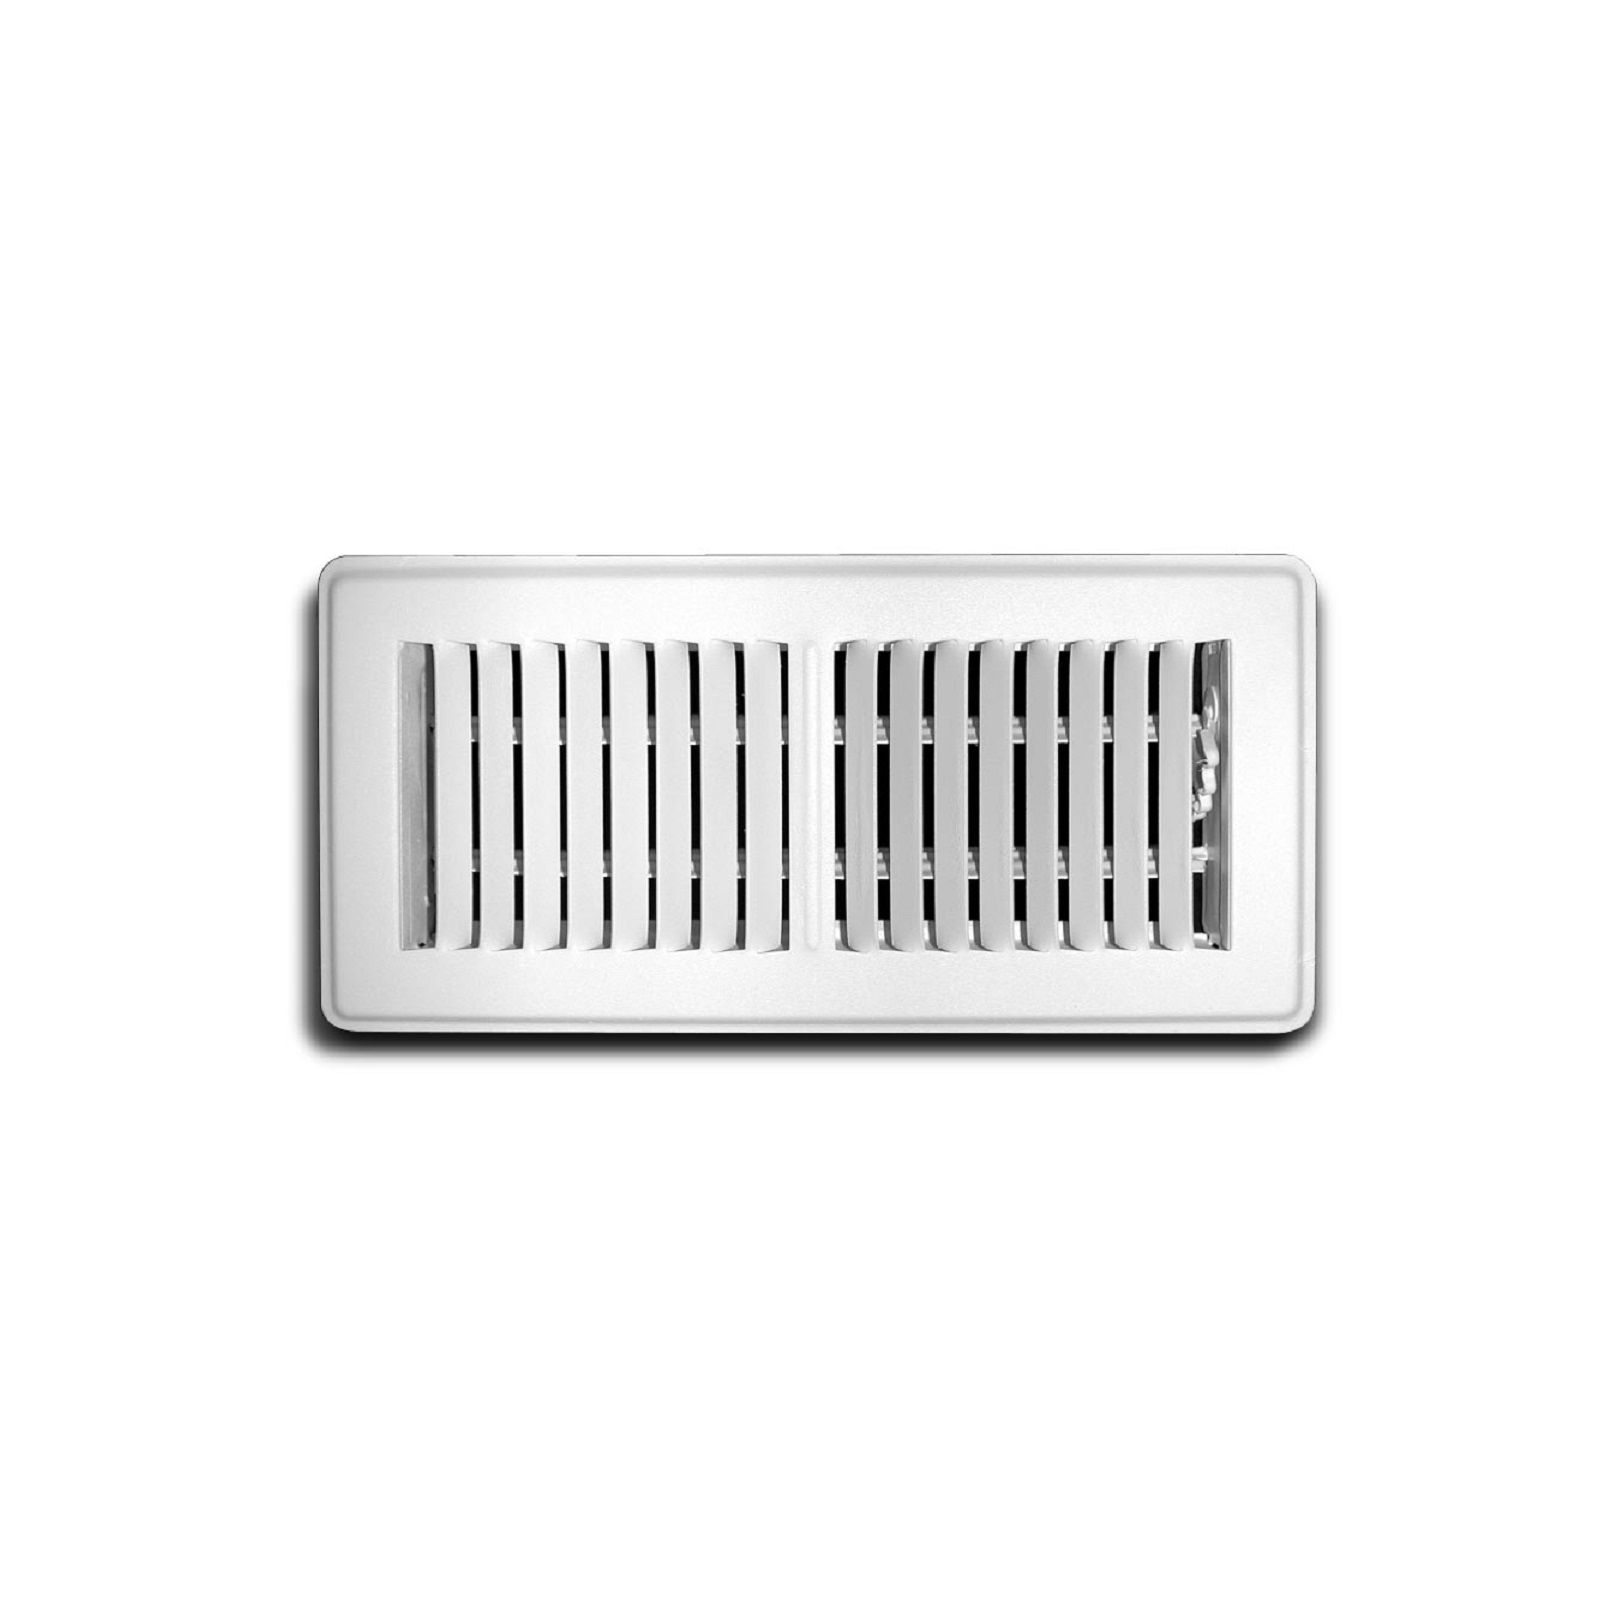 "TRUaire 150MW 06X12 - Steel Stamped Face Floor Diffuser, White, 06"" X 12"""